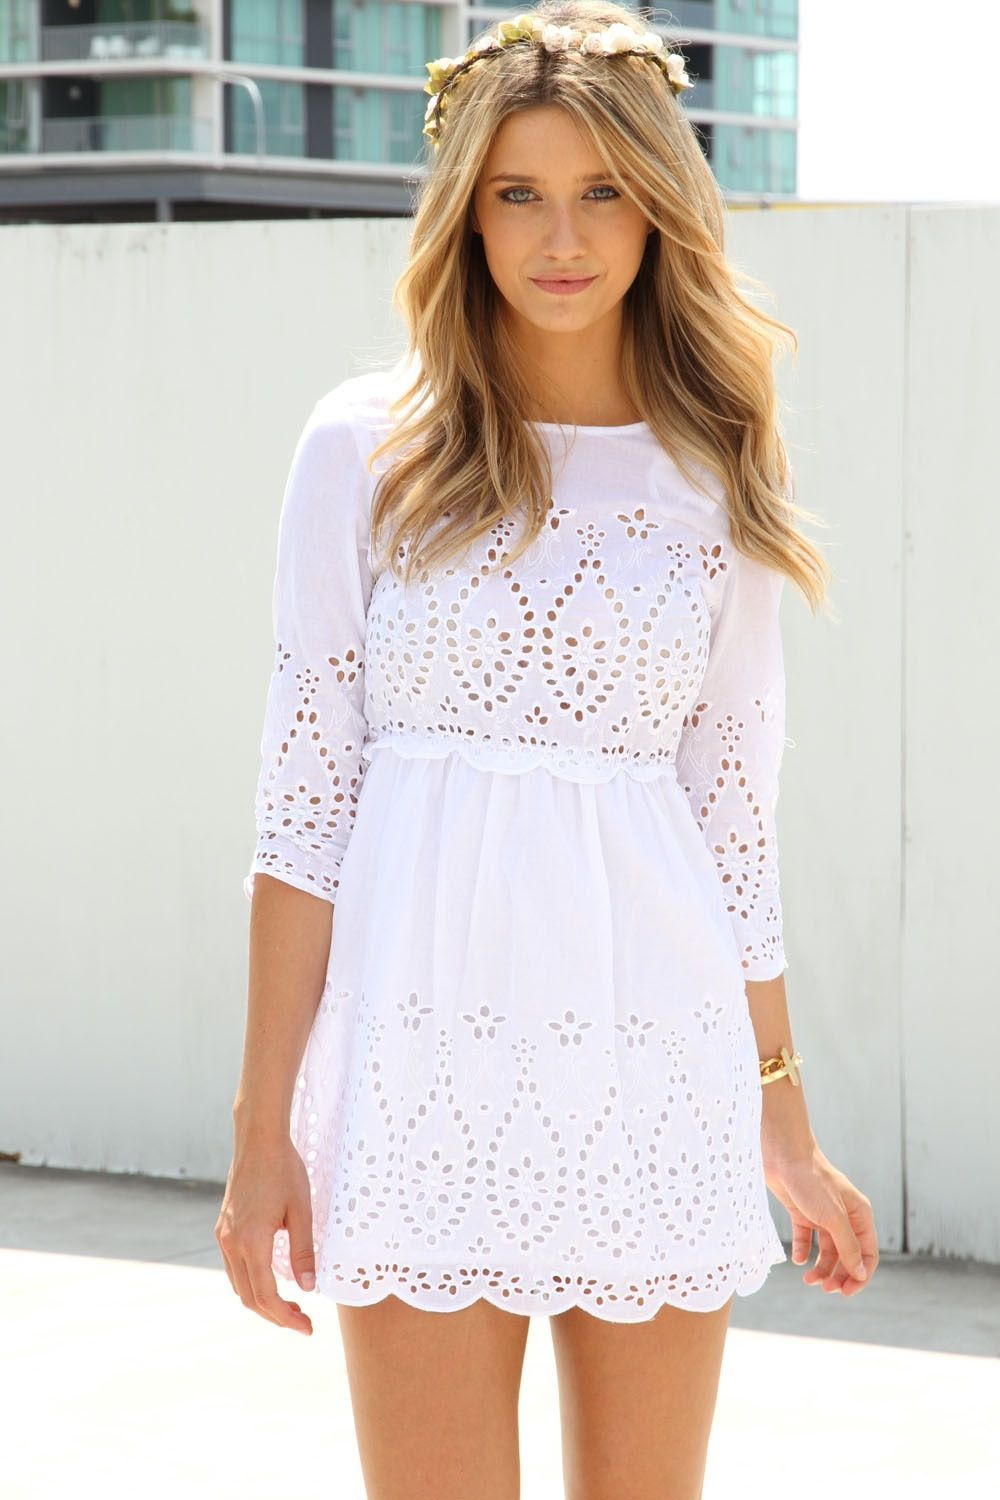 To acquire White summer dresses for women photo picture trends